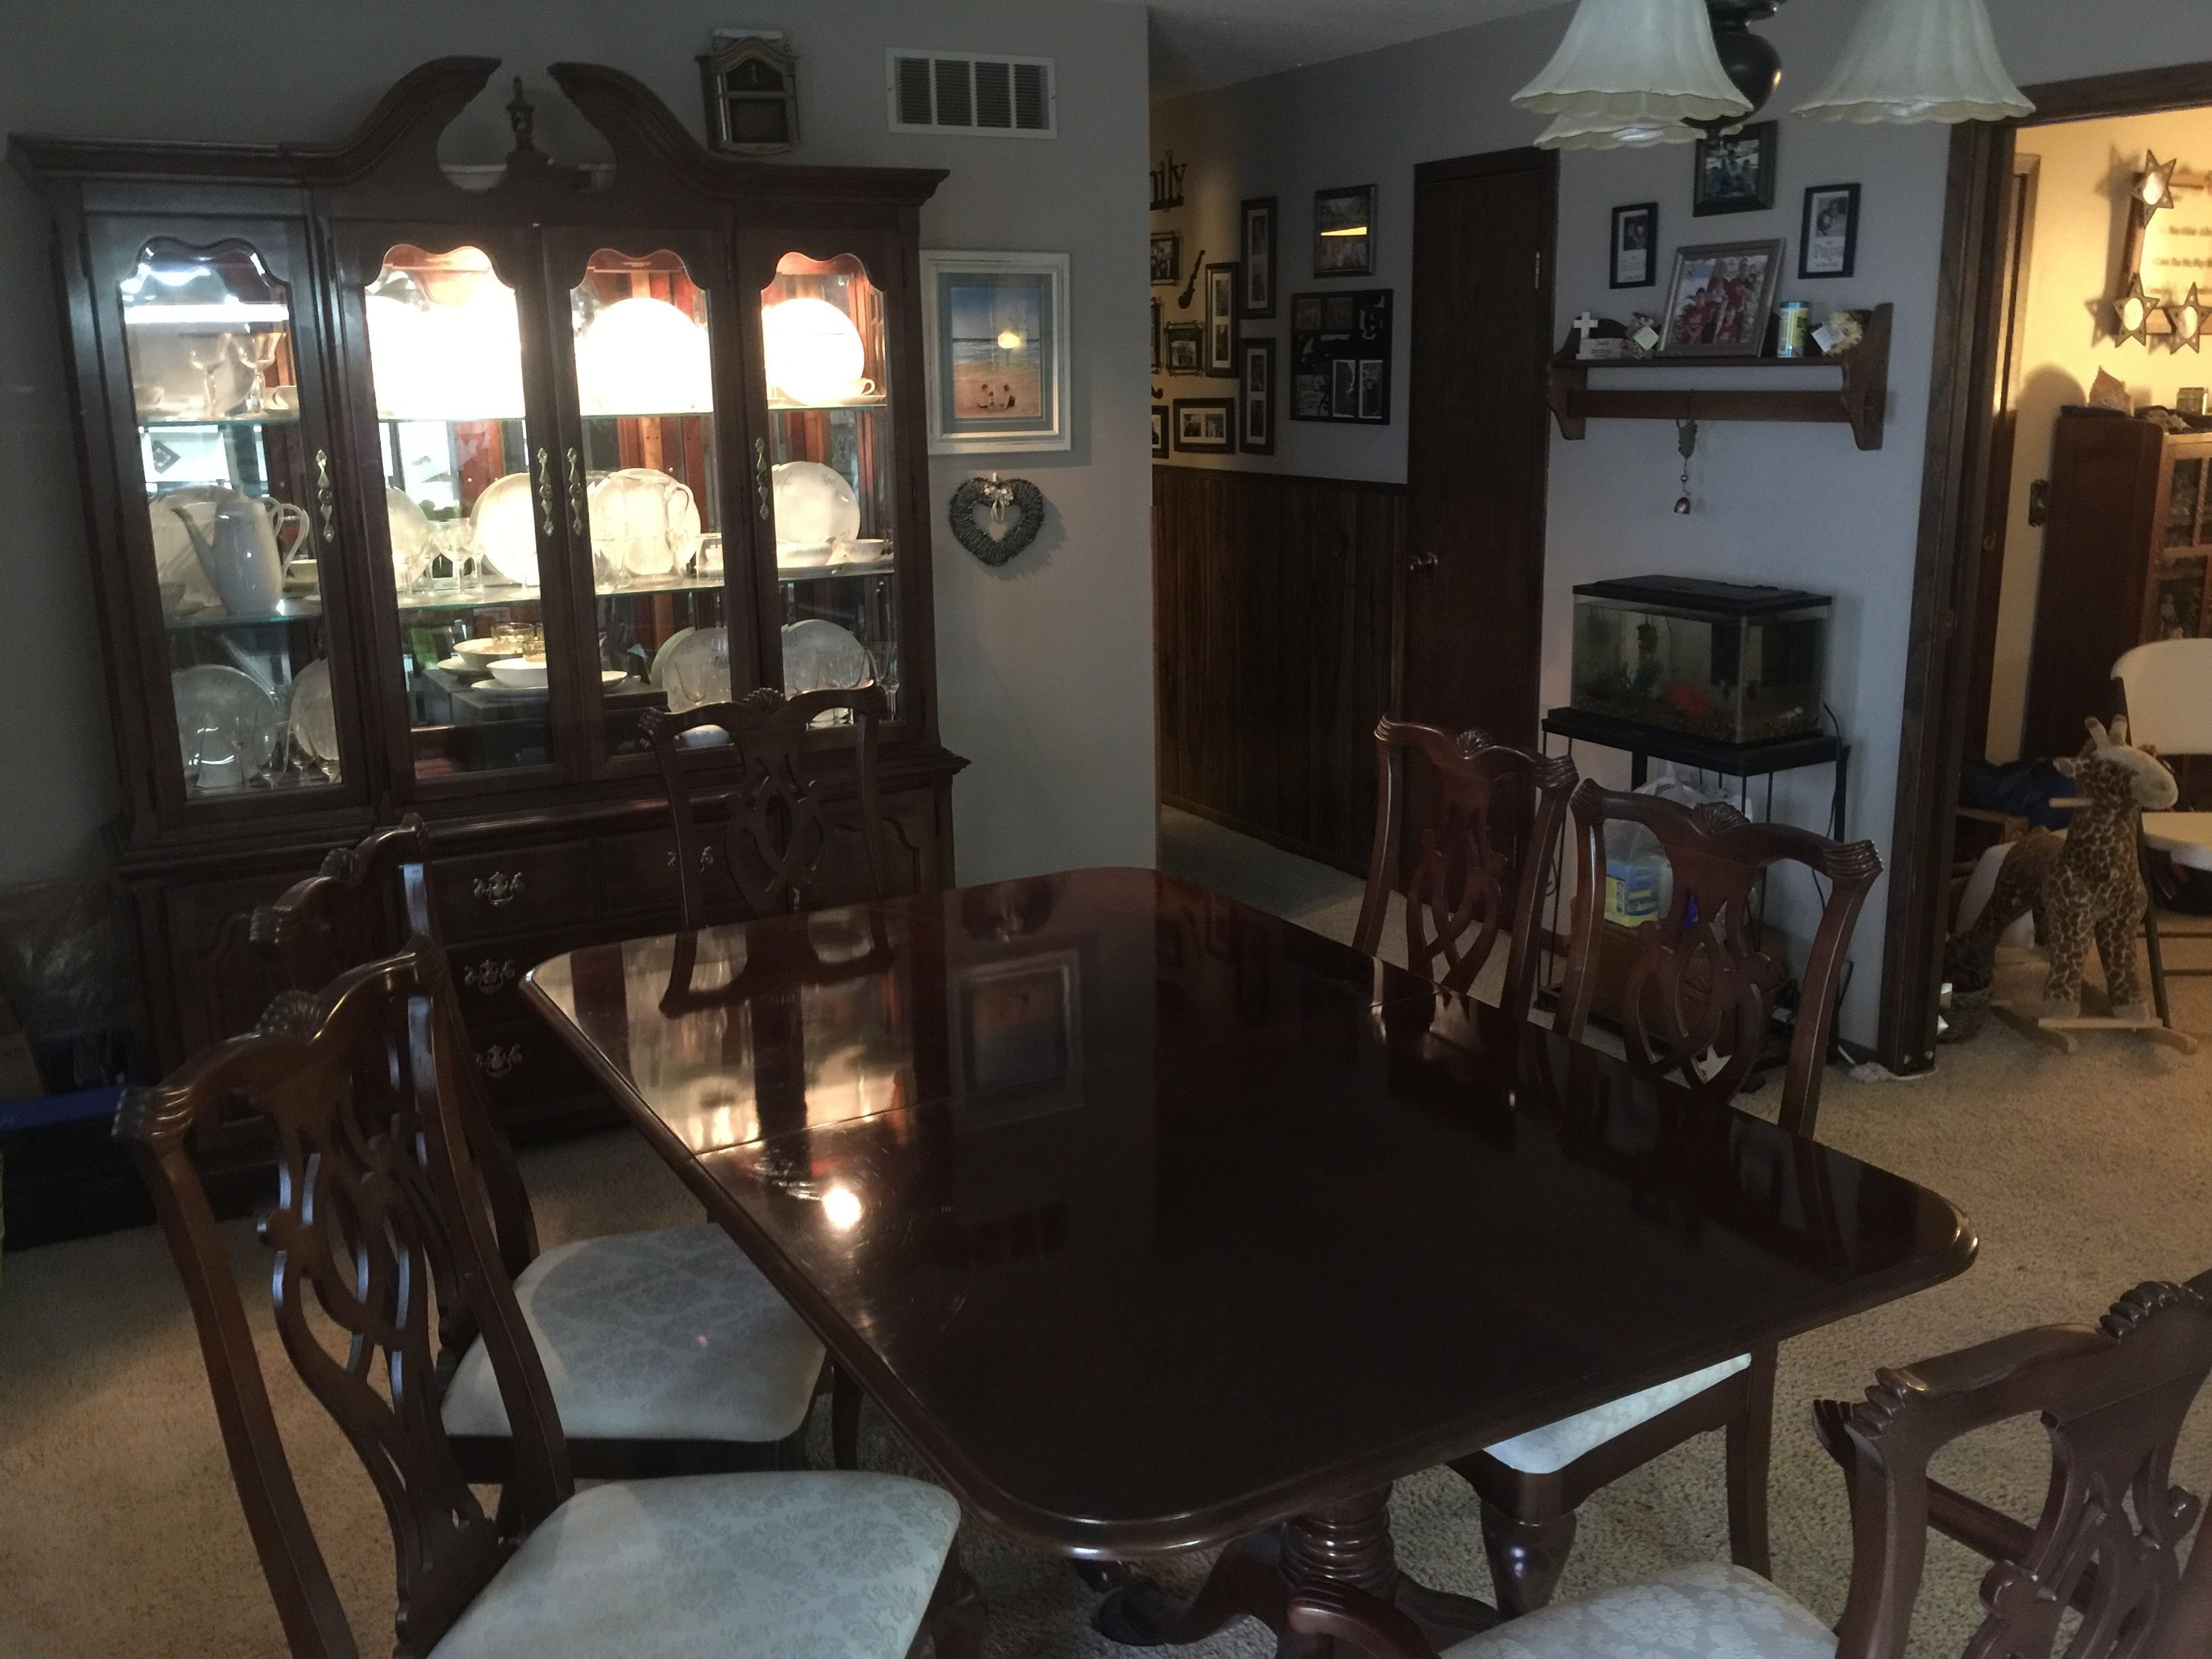 thomasville cherry hutch and dining room table with chairs home thomasville cherry hutch and dining room table with chairs image 1